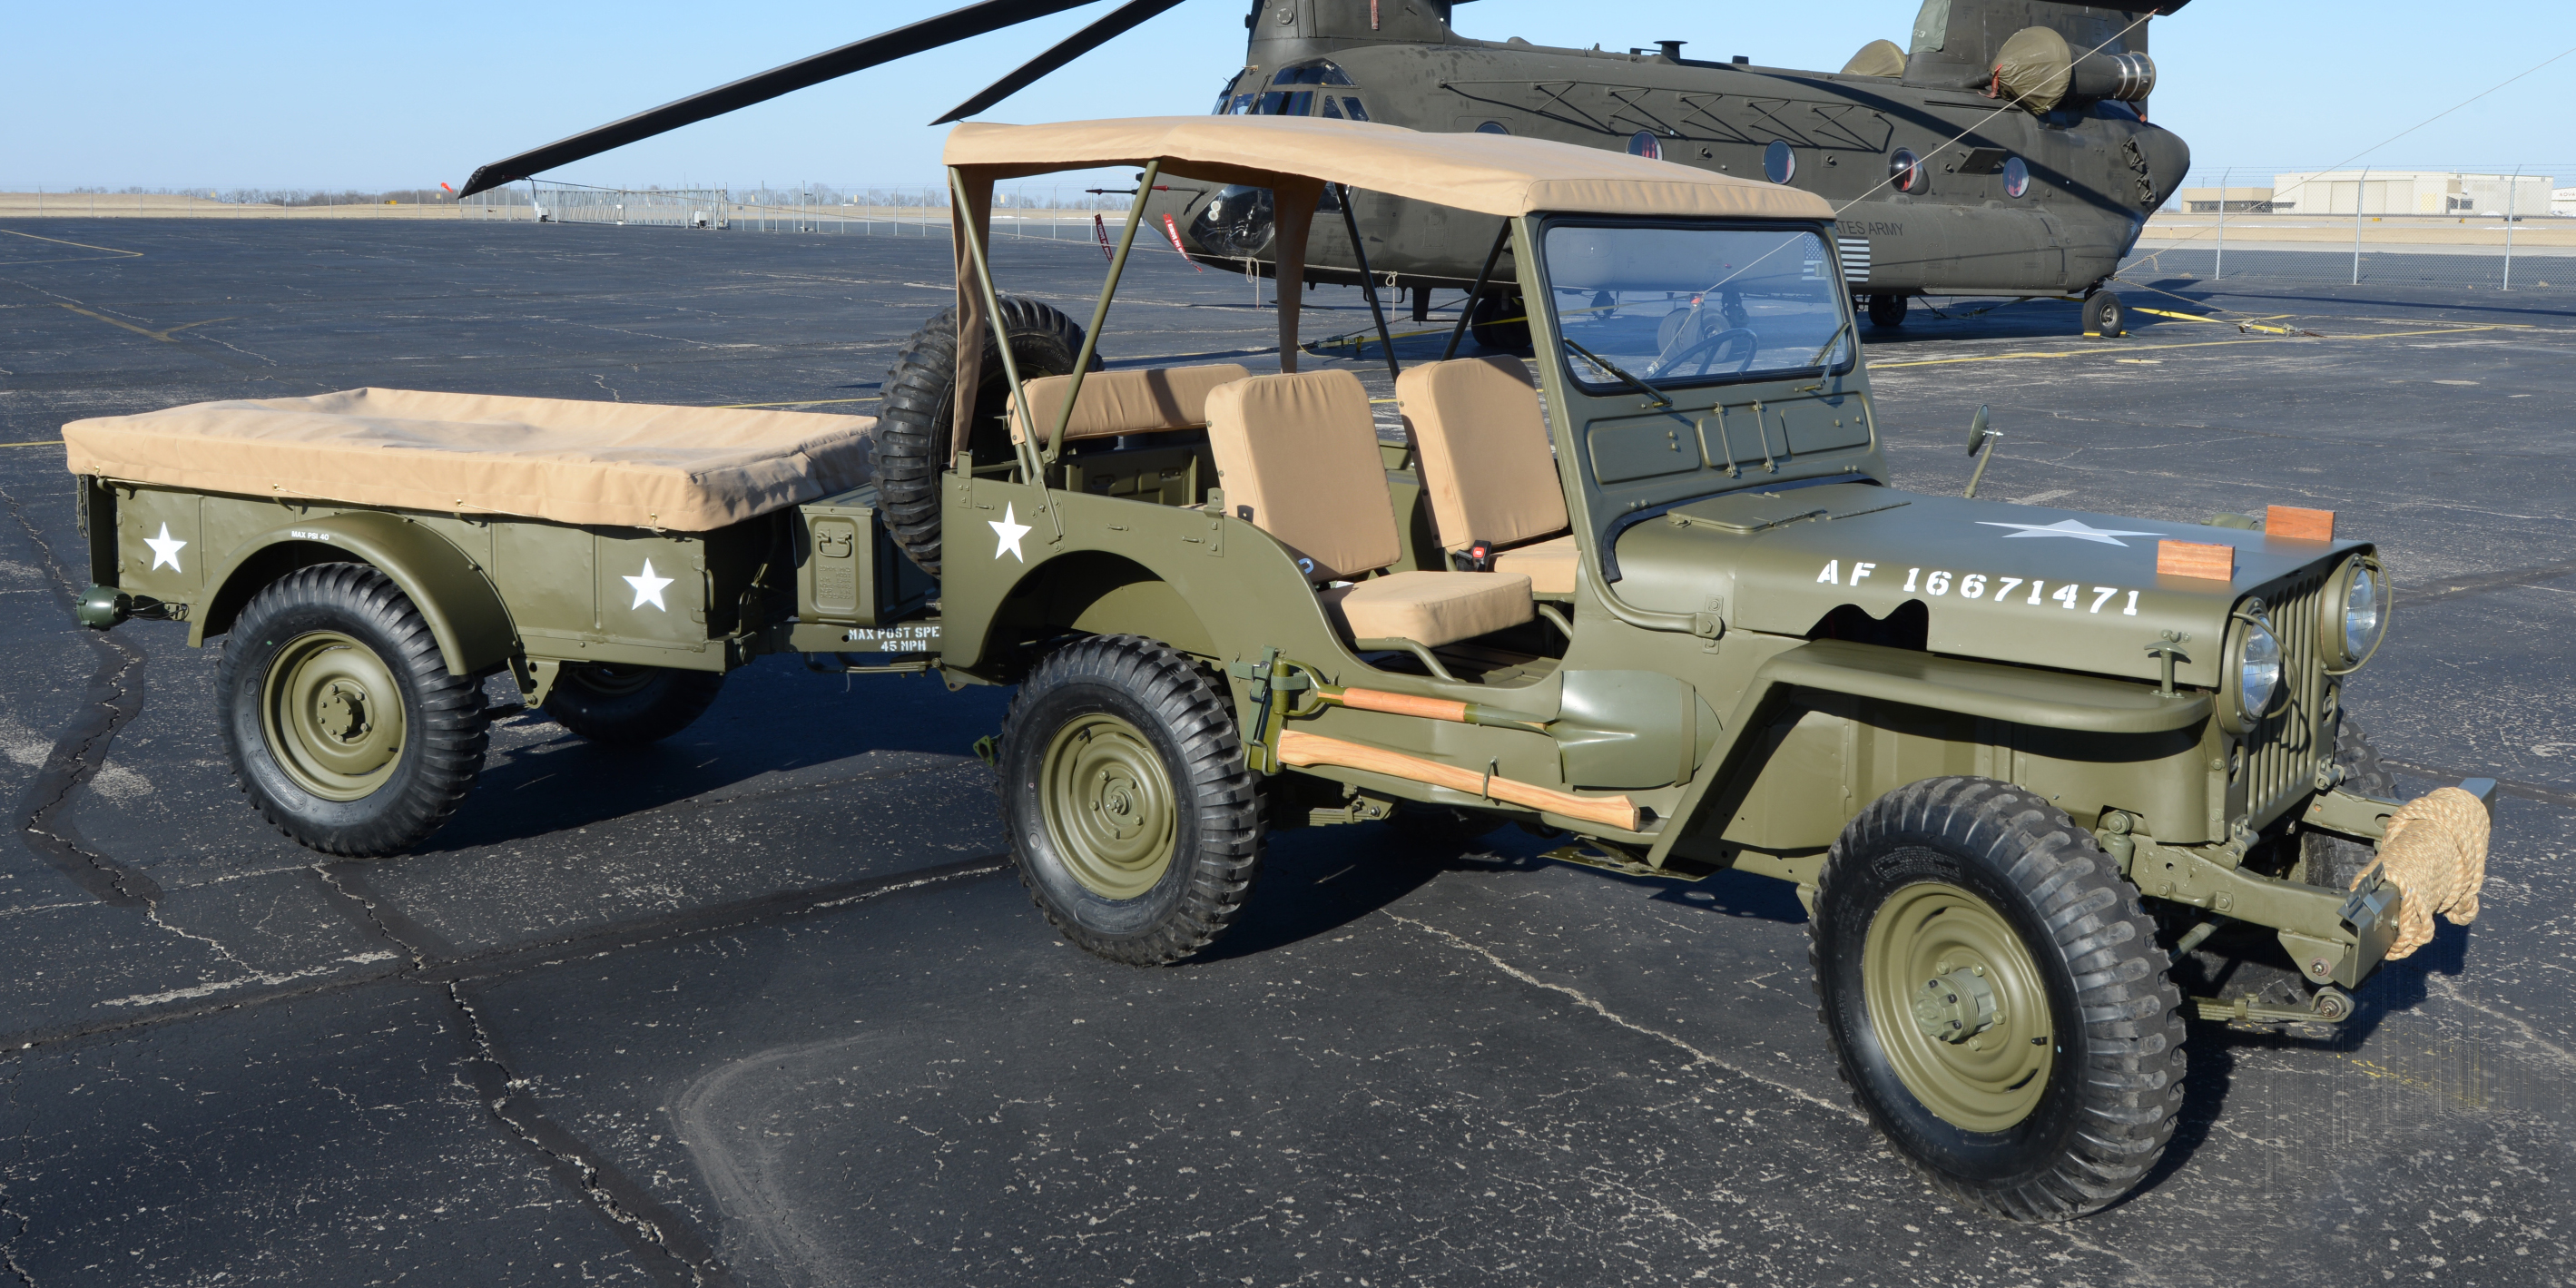 51 willys m38 jeep - kultured customs